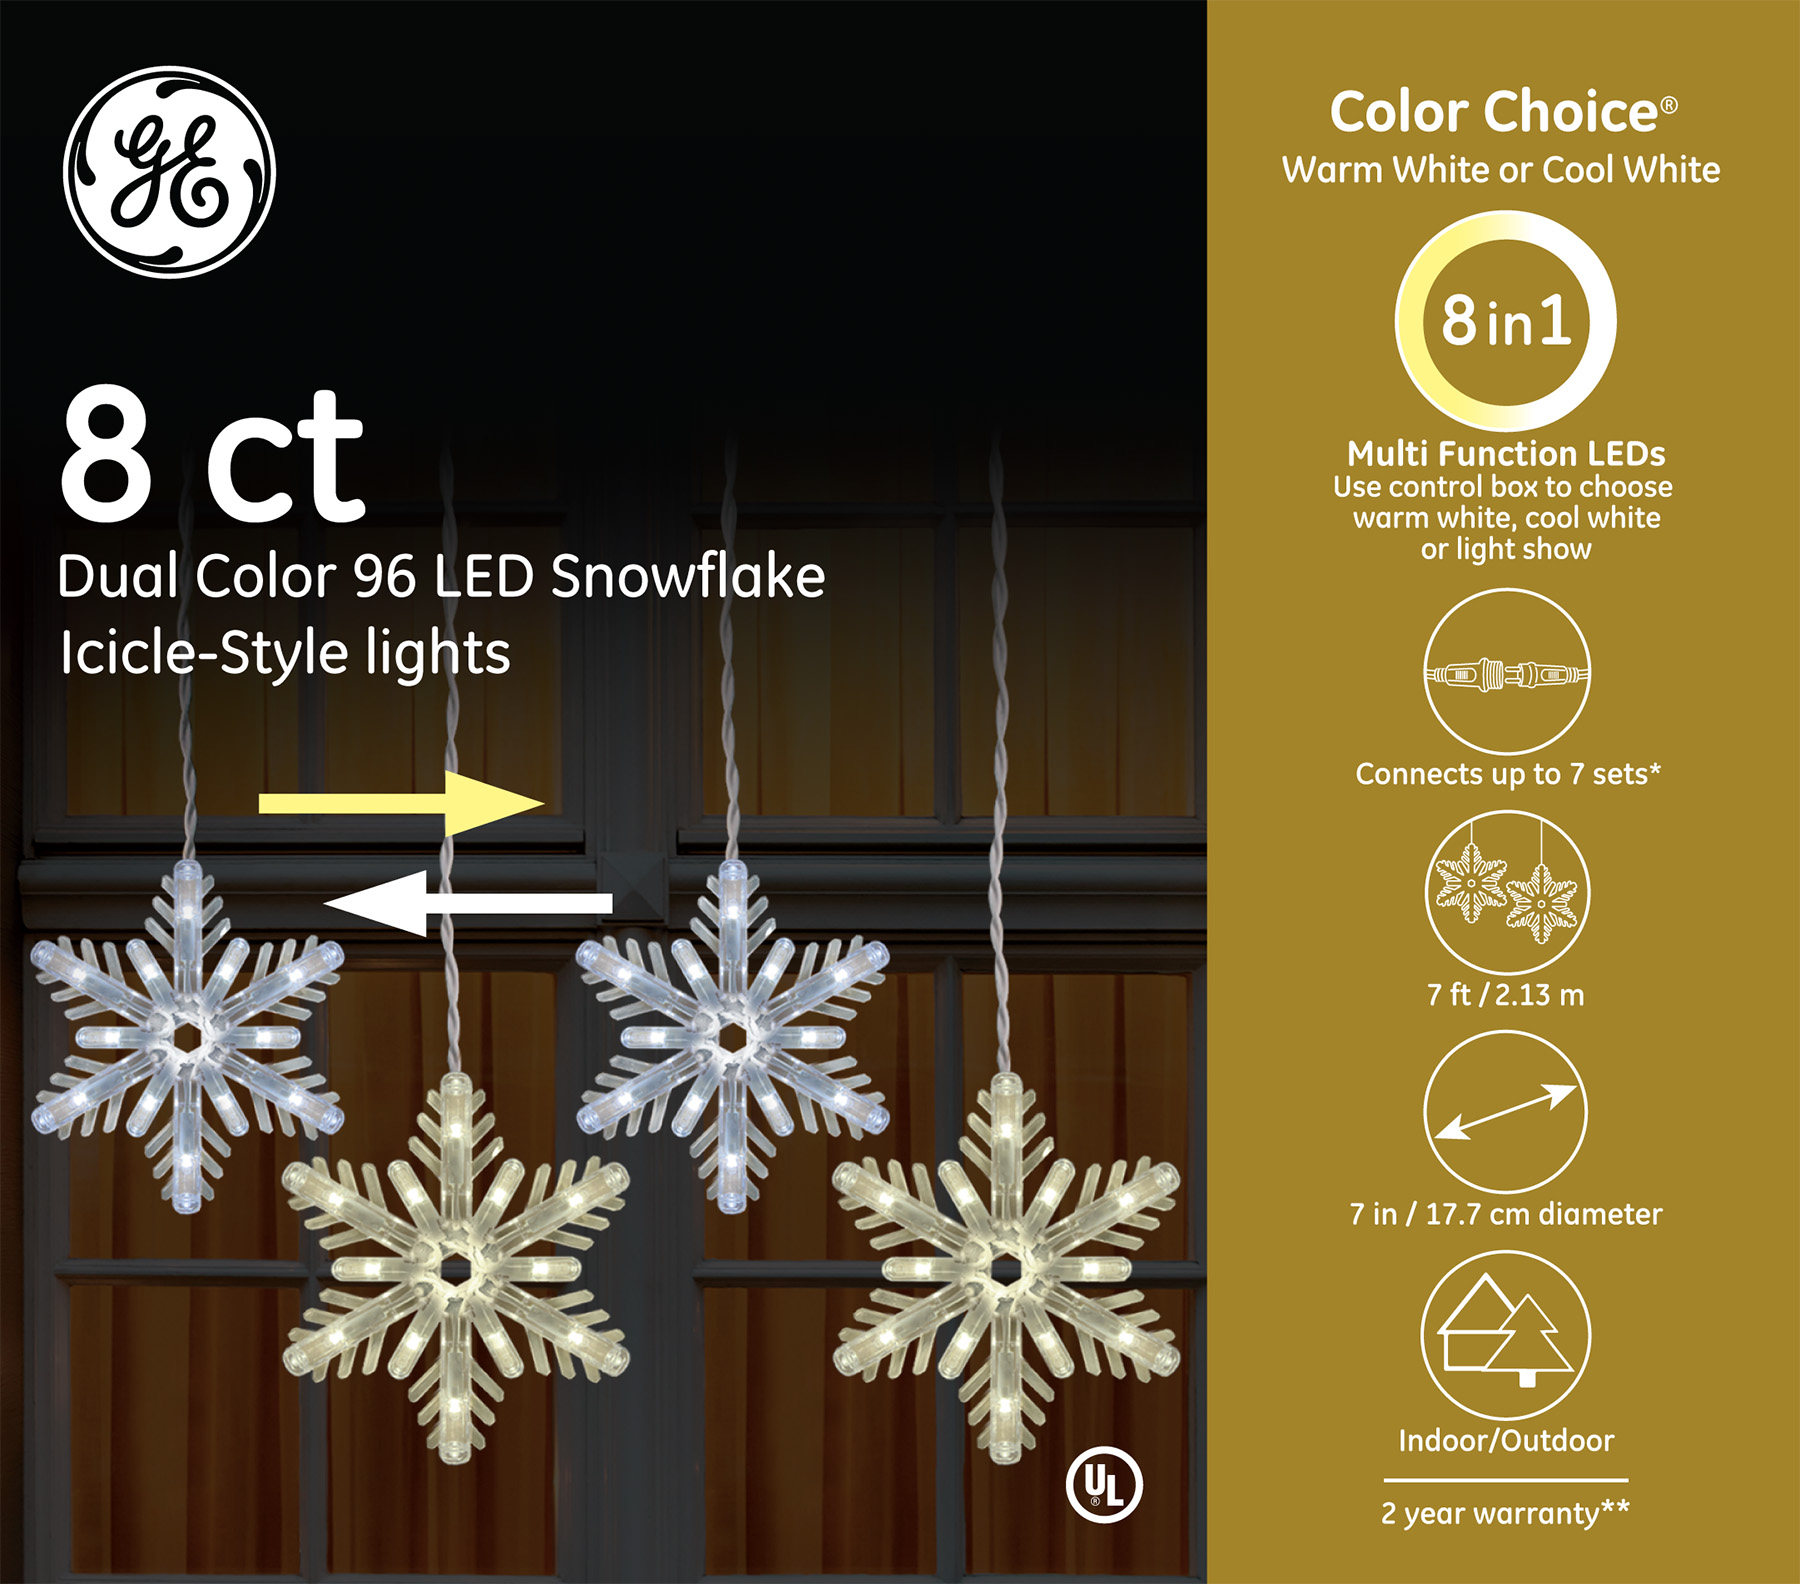 89250 Ge Color Choice 174 Led Snowflake Icicle Style Lights